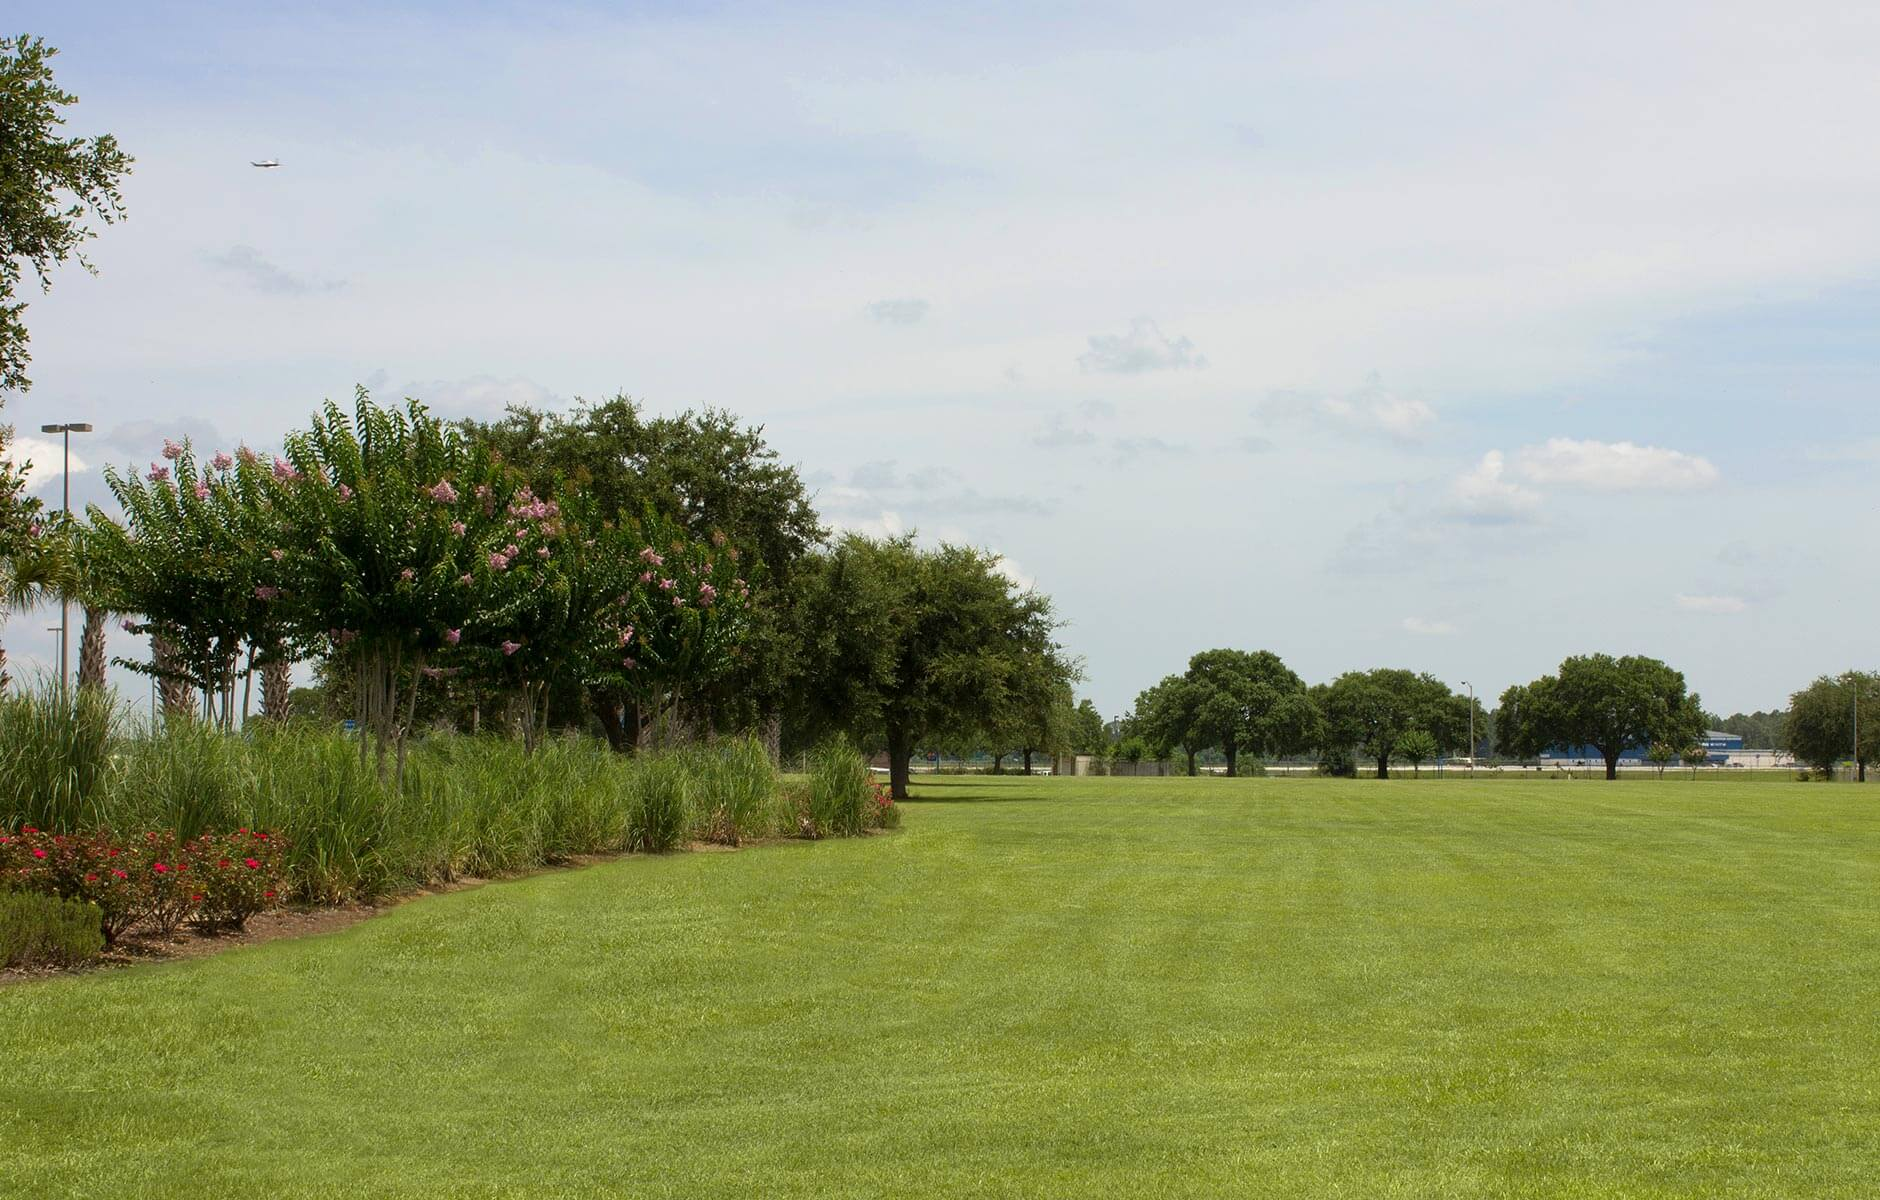 Open field of freshly maintained green grass on the Gulf Coast